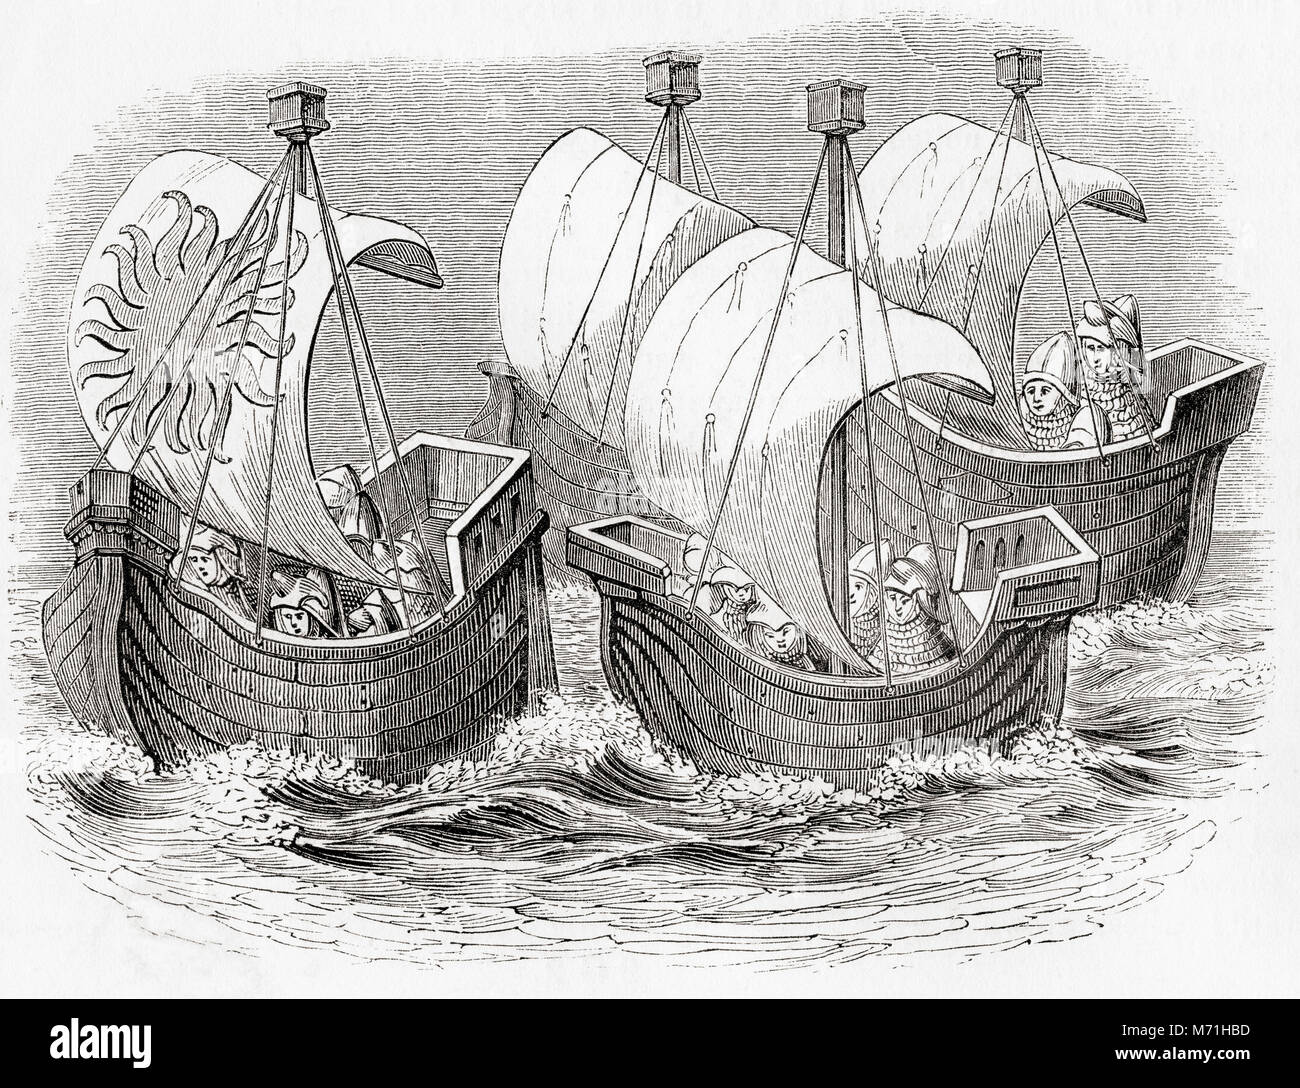 14th century ships from the time of Richard II.  From Old England: A Pictorial Museum, published 1847. - Stock Image